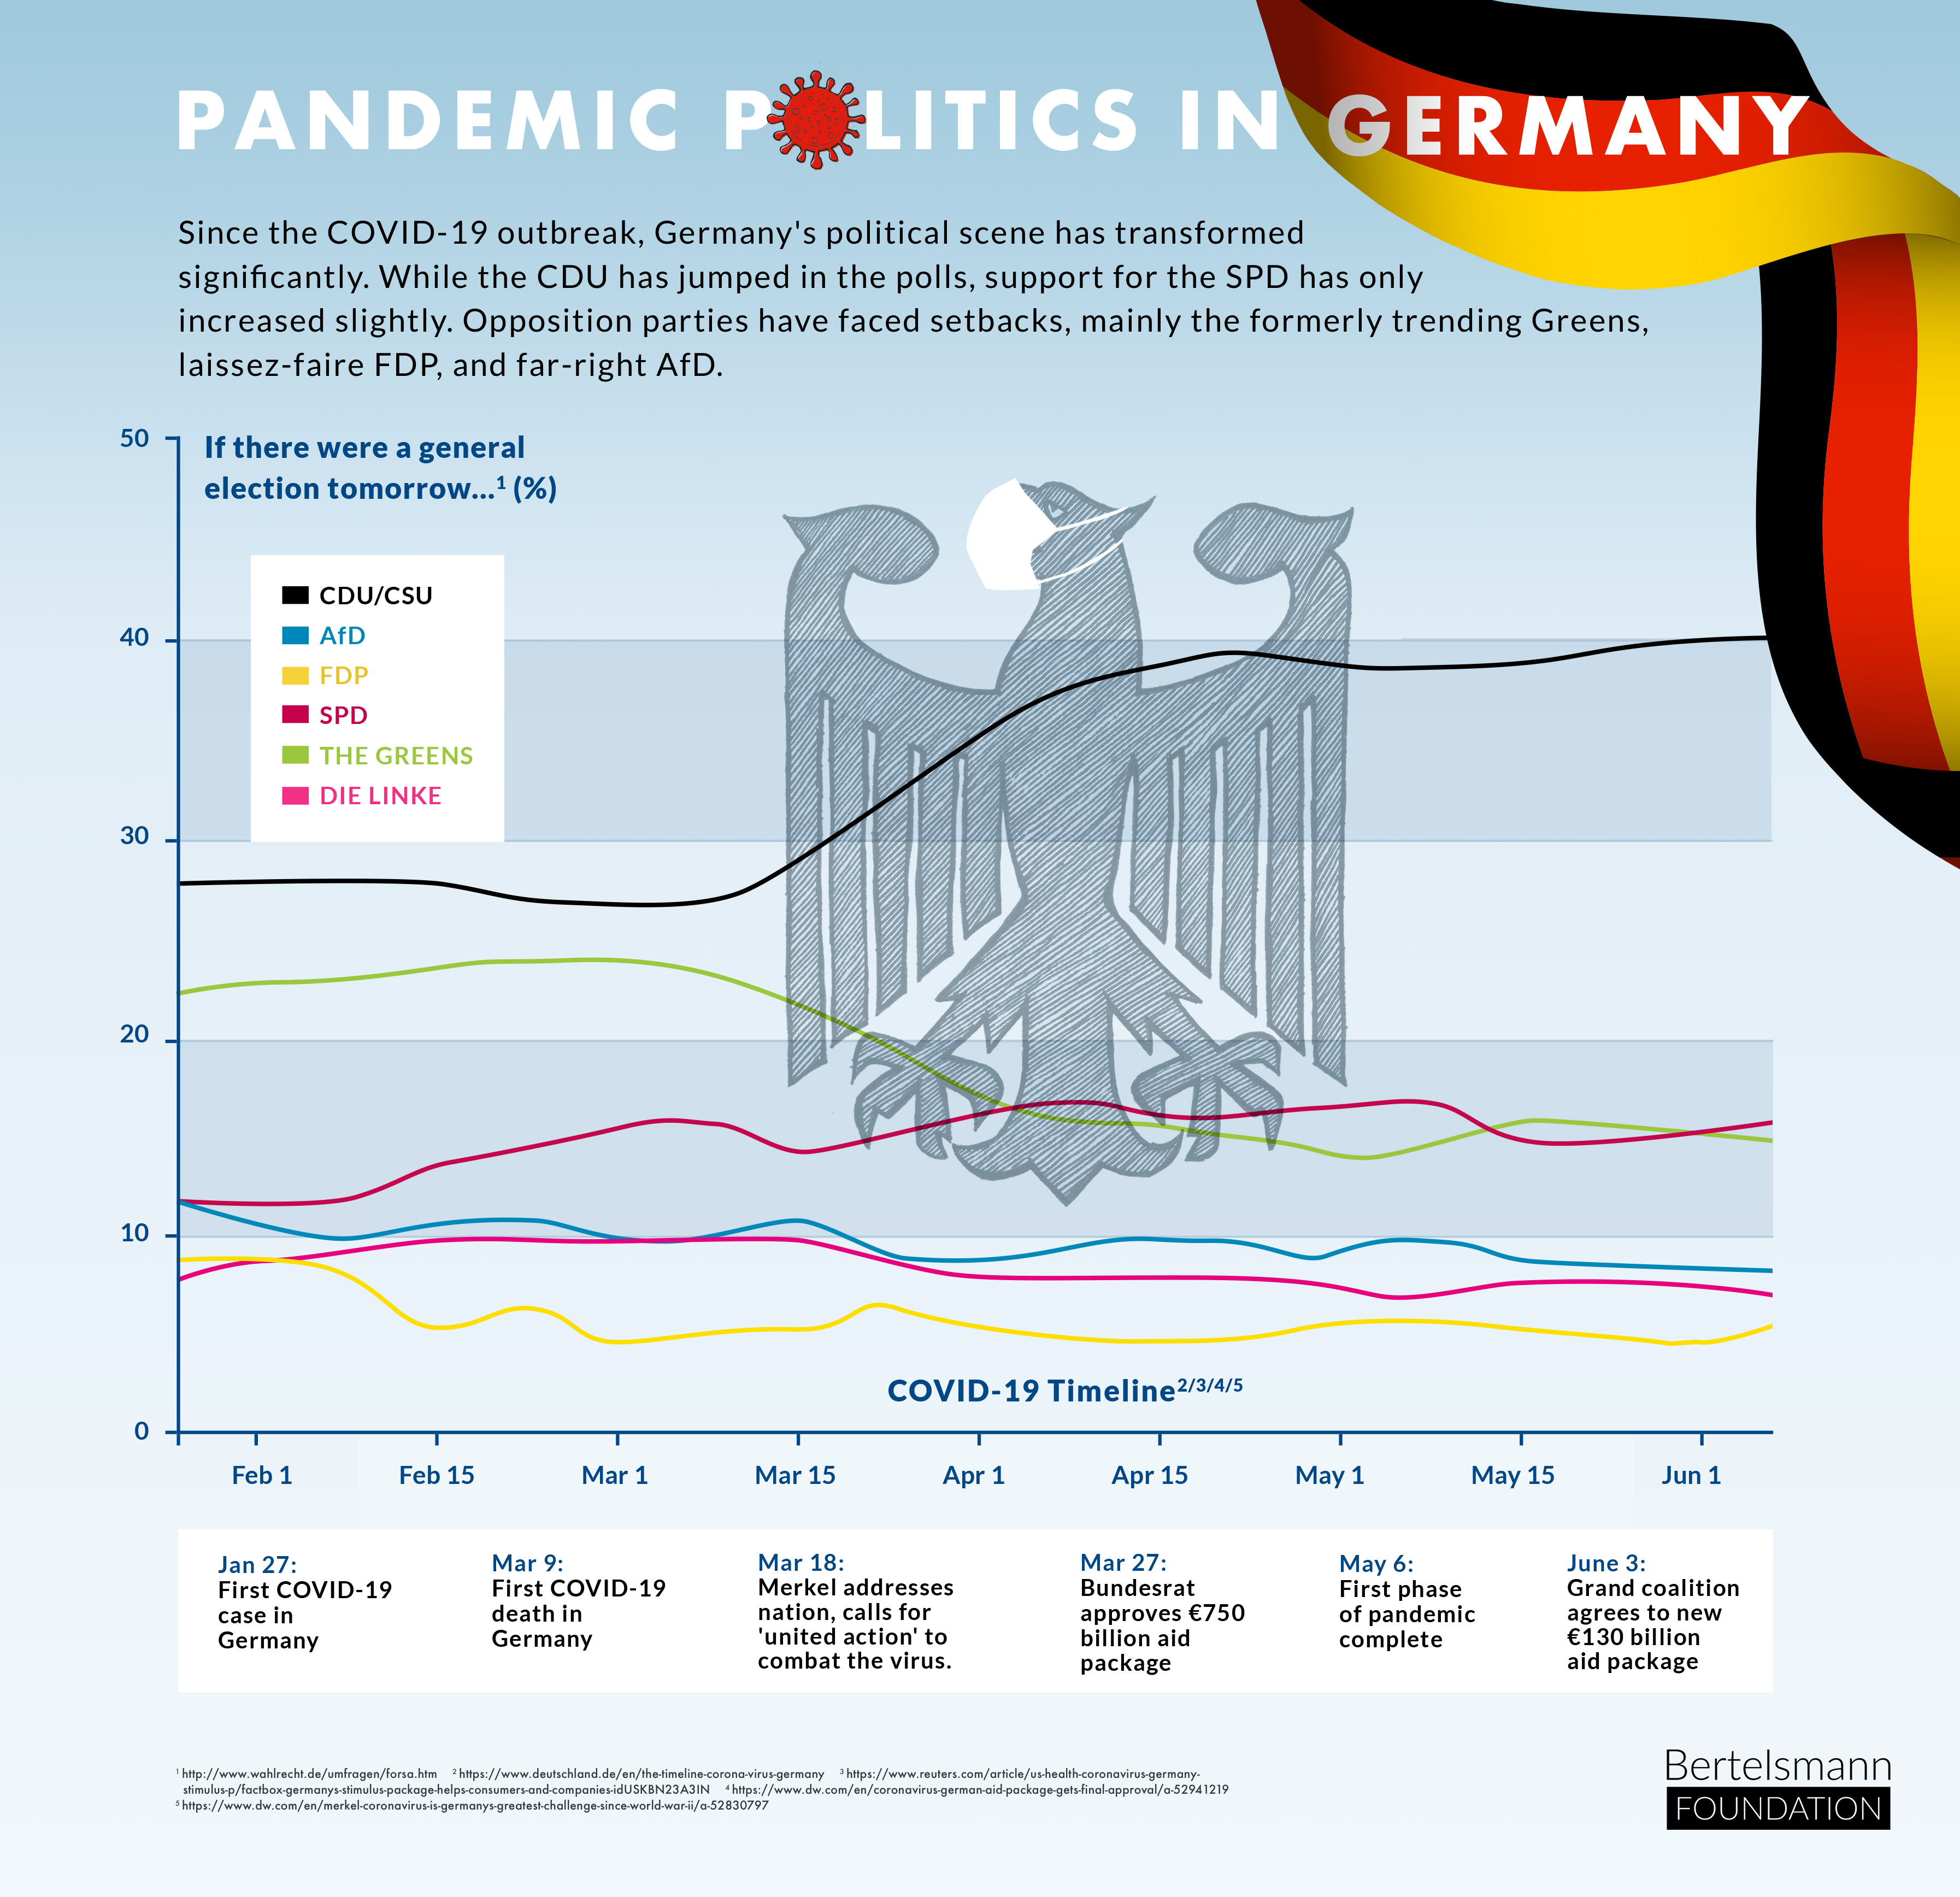 Pandemic Politics in Germany